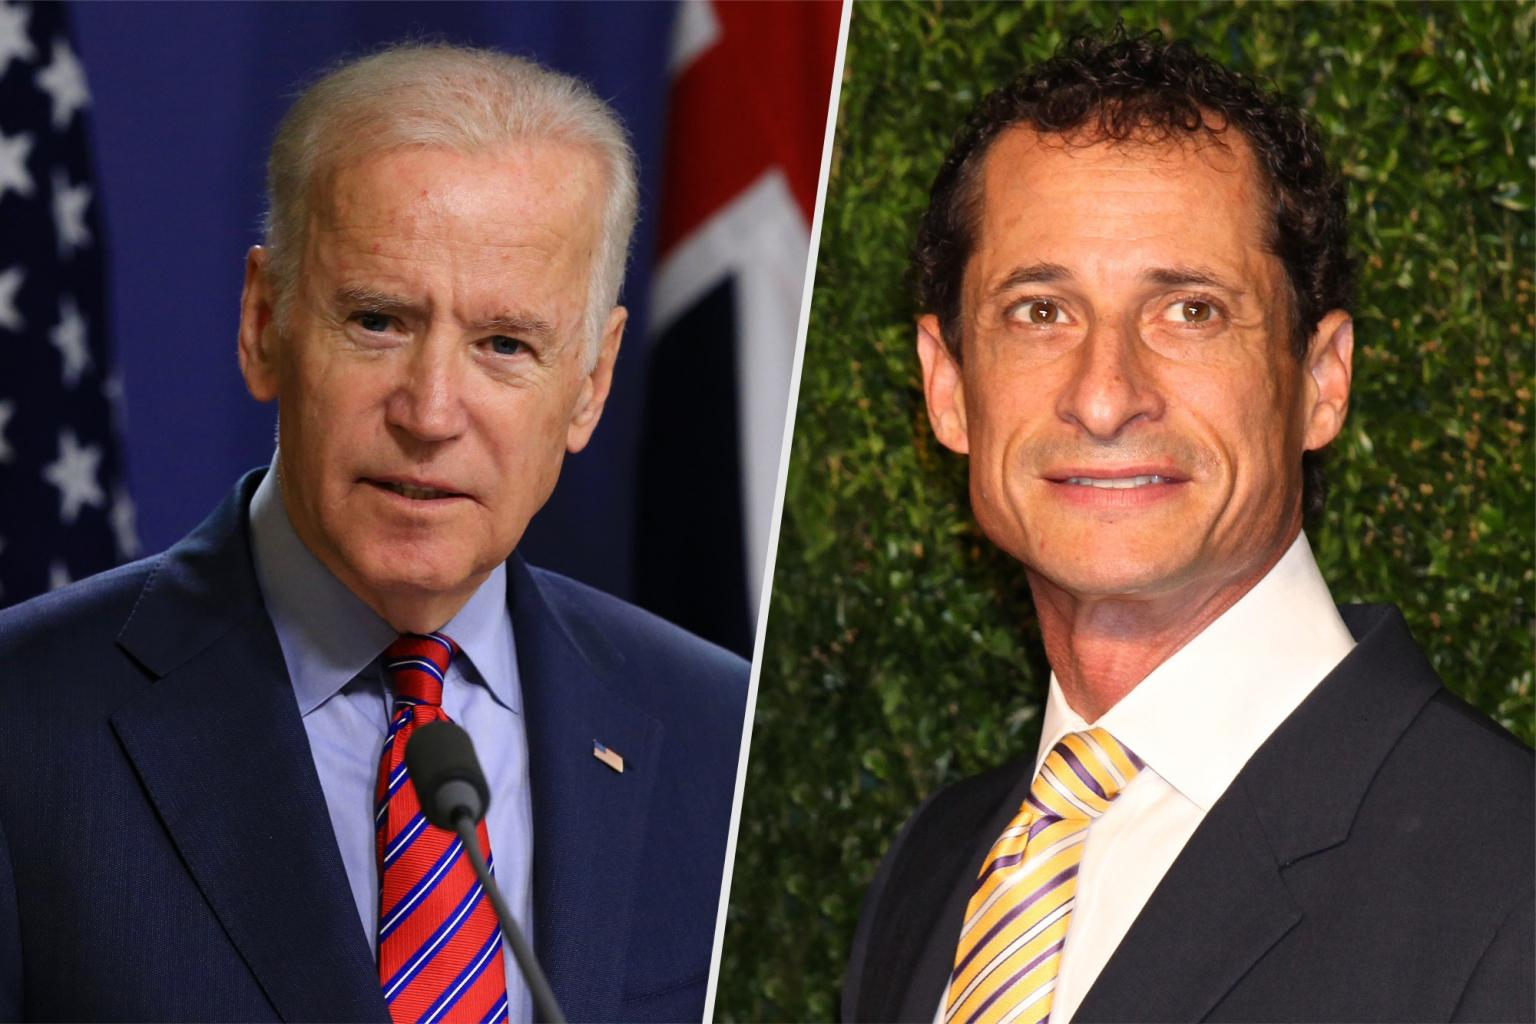 Joe Biden Weighs on Anthony Weiner: 'I'm Not a Big Fan'